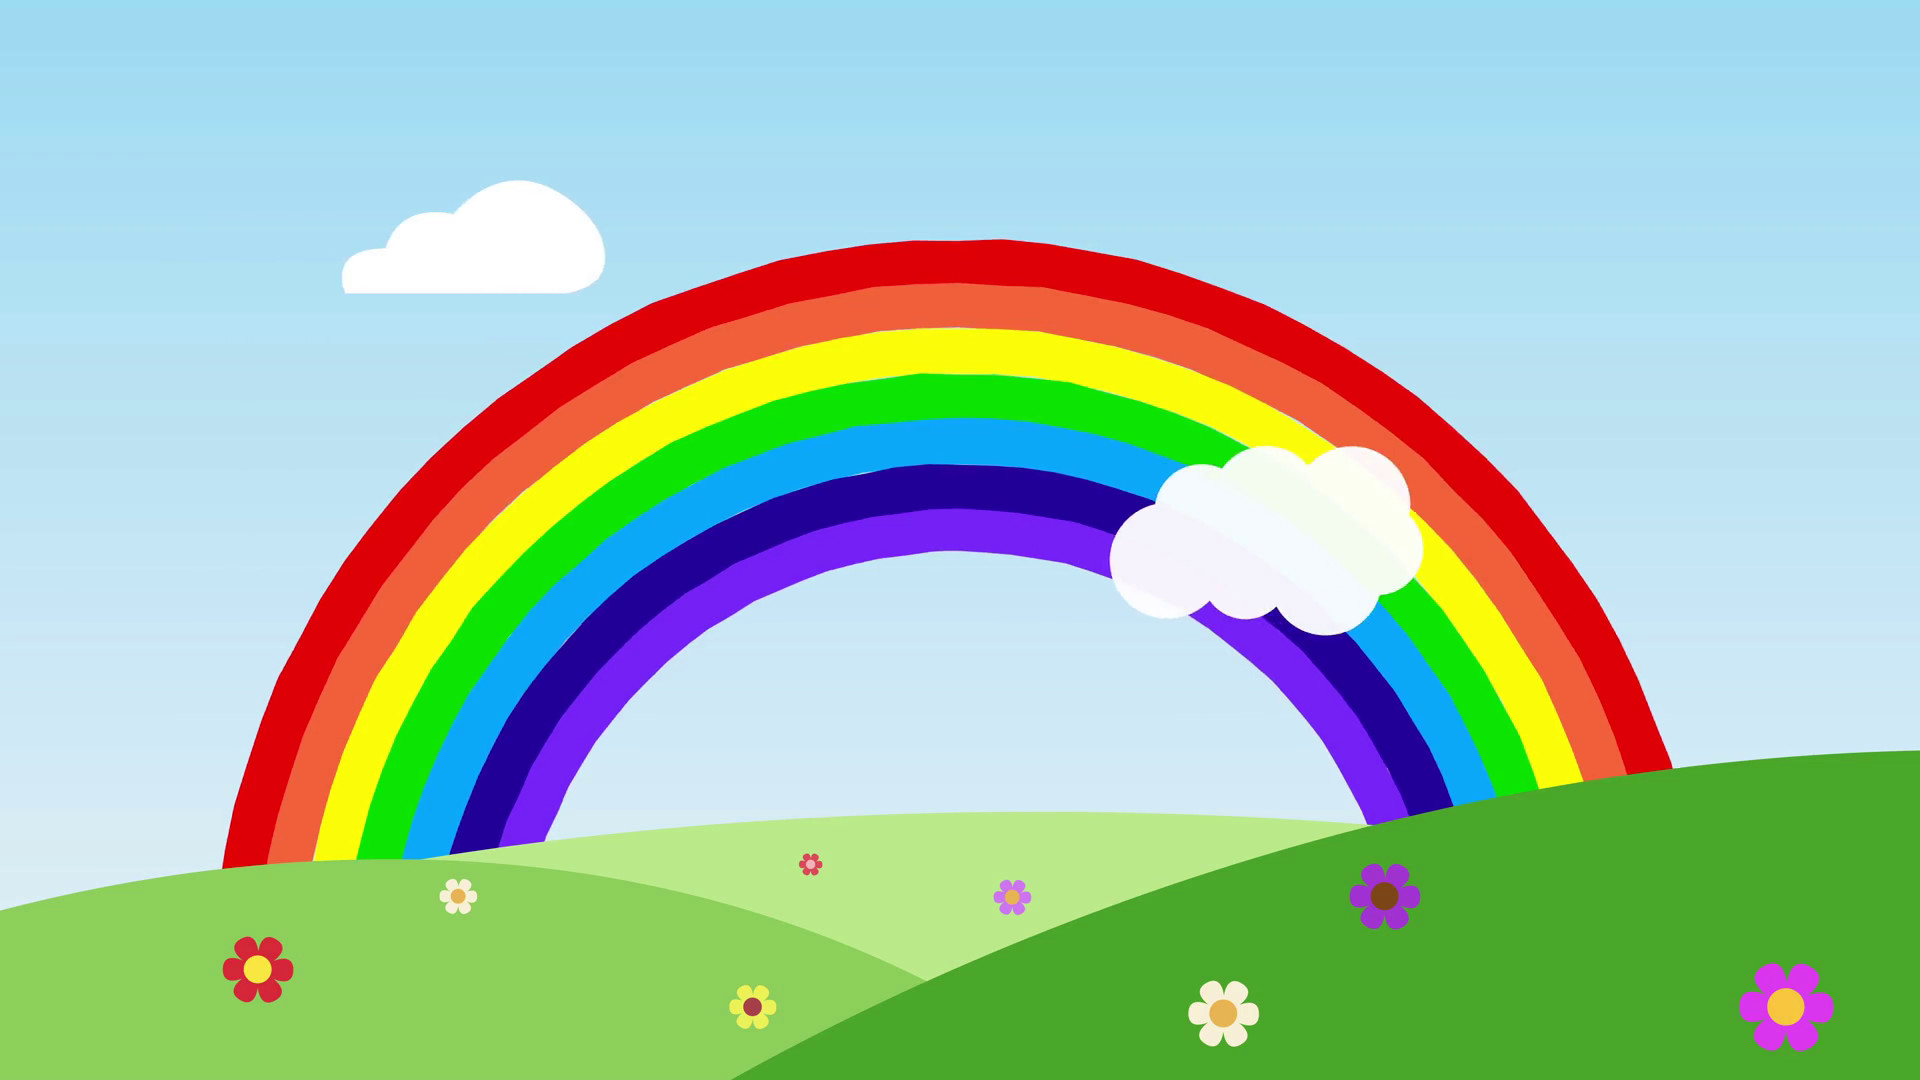 1920x1080 ... rainbow with some clouds over the flowers hills with space for your  text or logo. nature and rainbow seamless loop. Rainbow Background for  children full ...